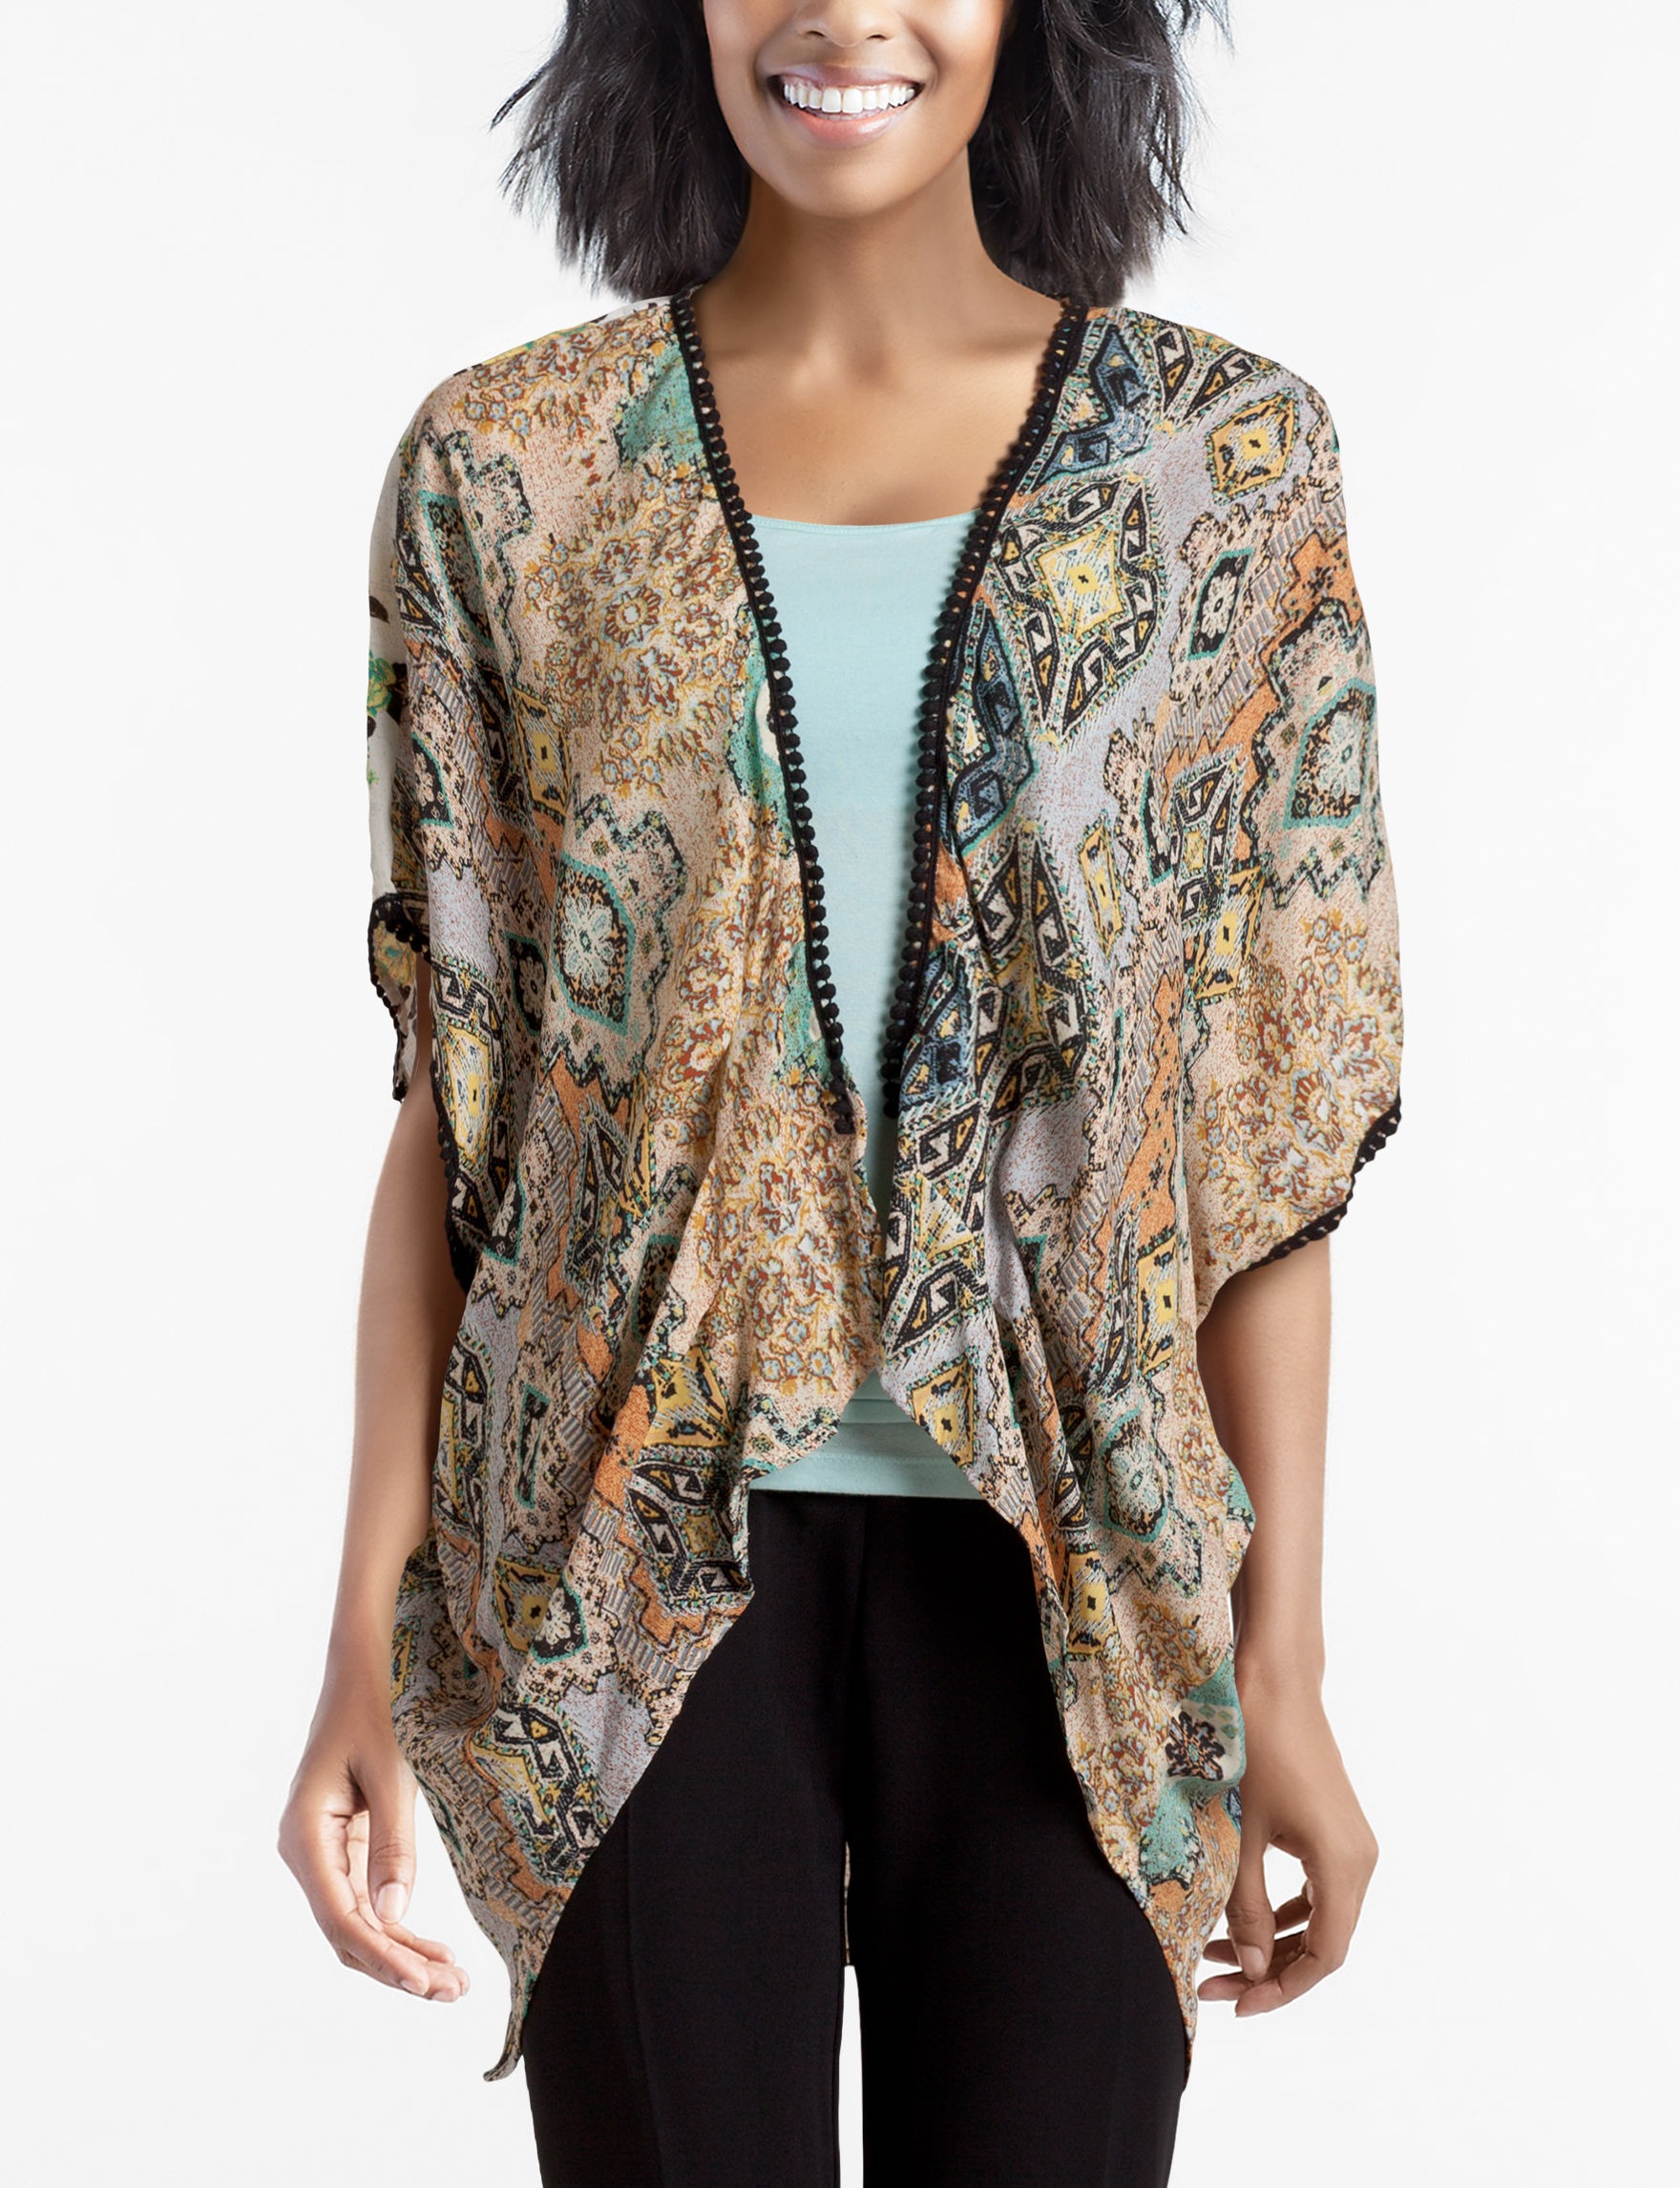 Figuero & Flower Brown Multi Shirts & Blouses